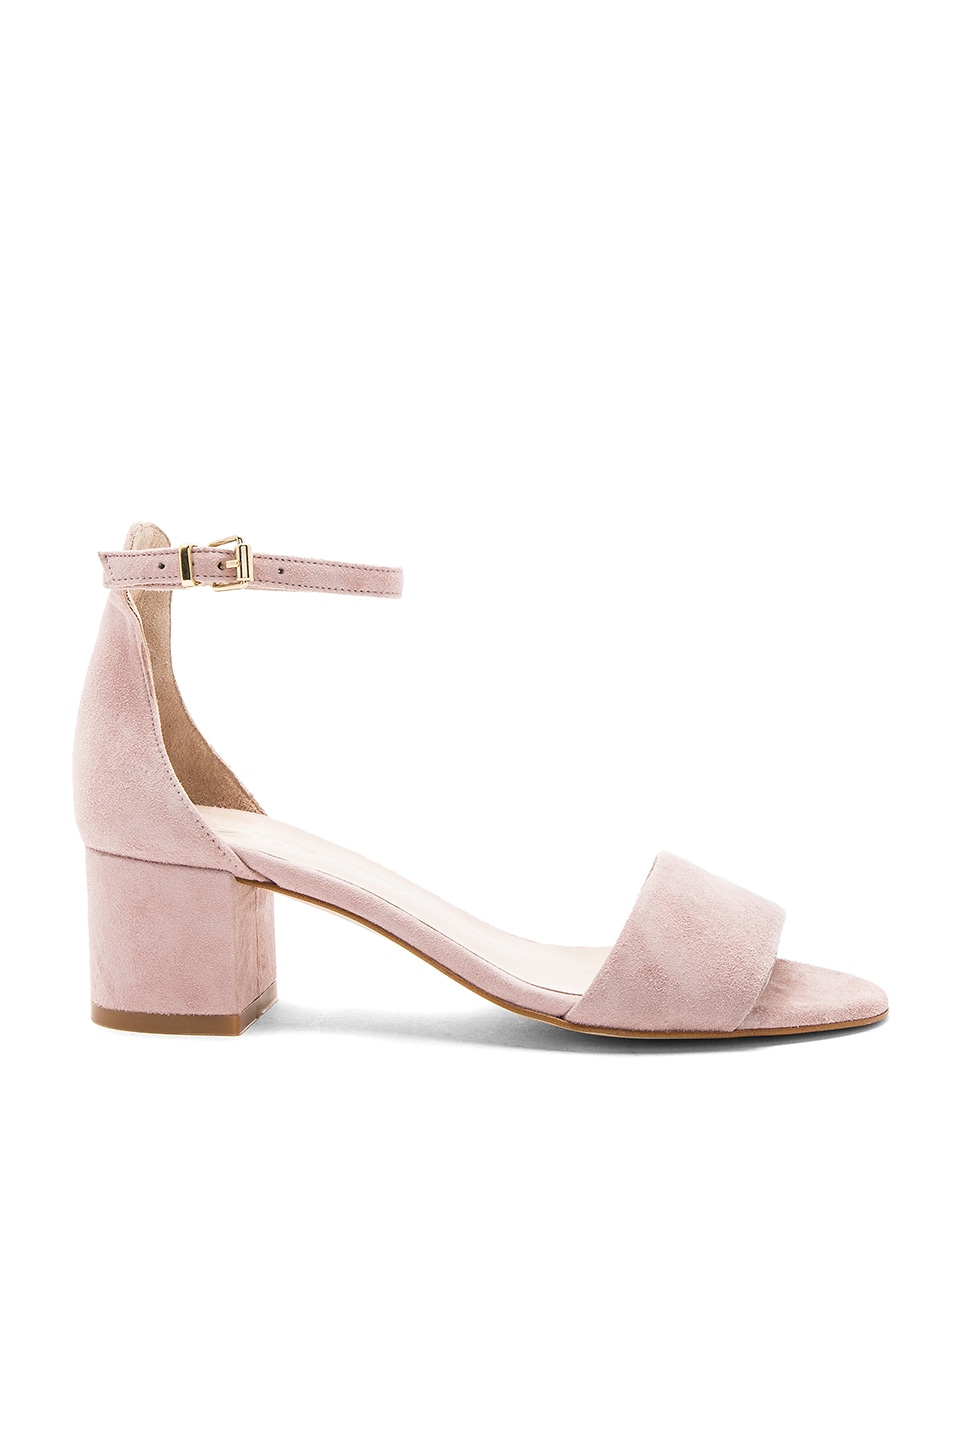 Free People Marigold Block Heel in Mauve